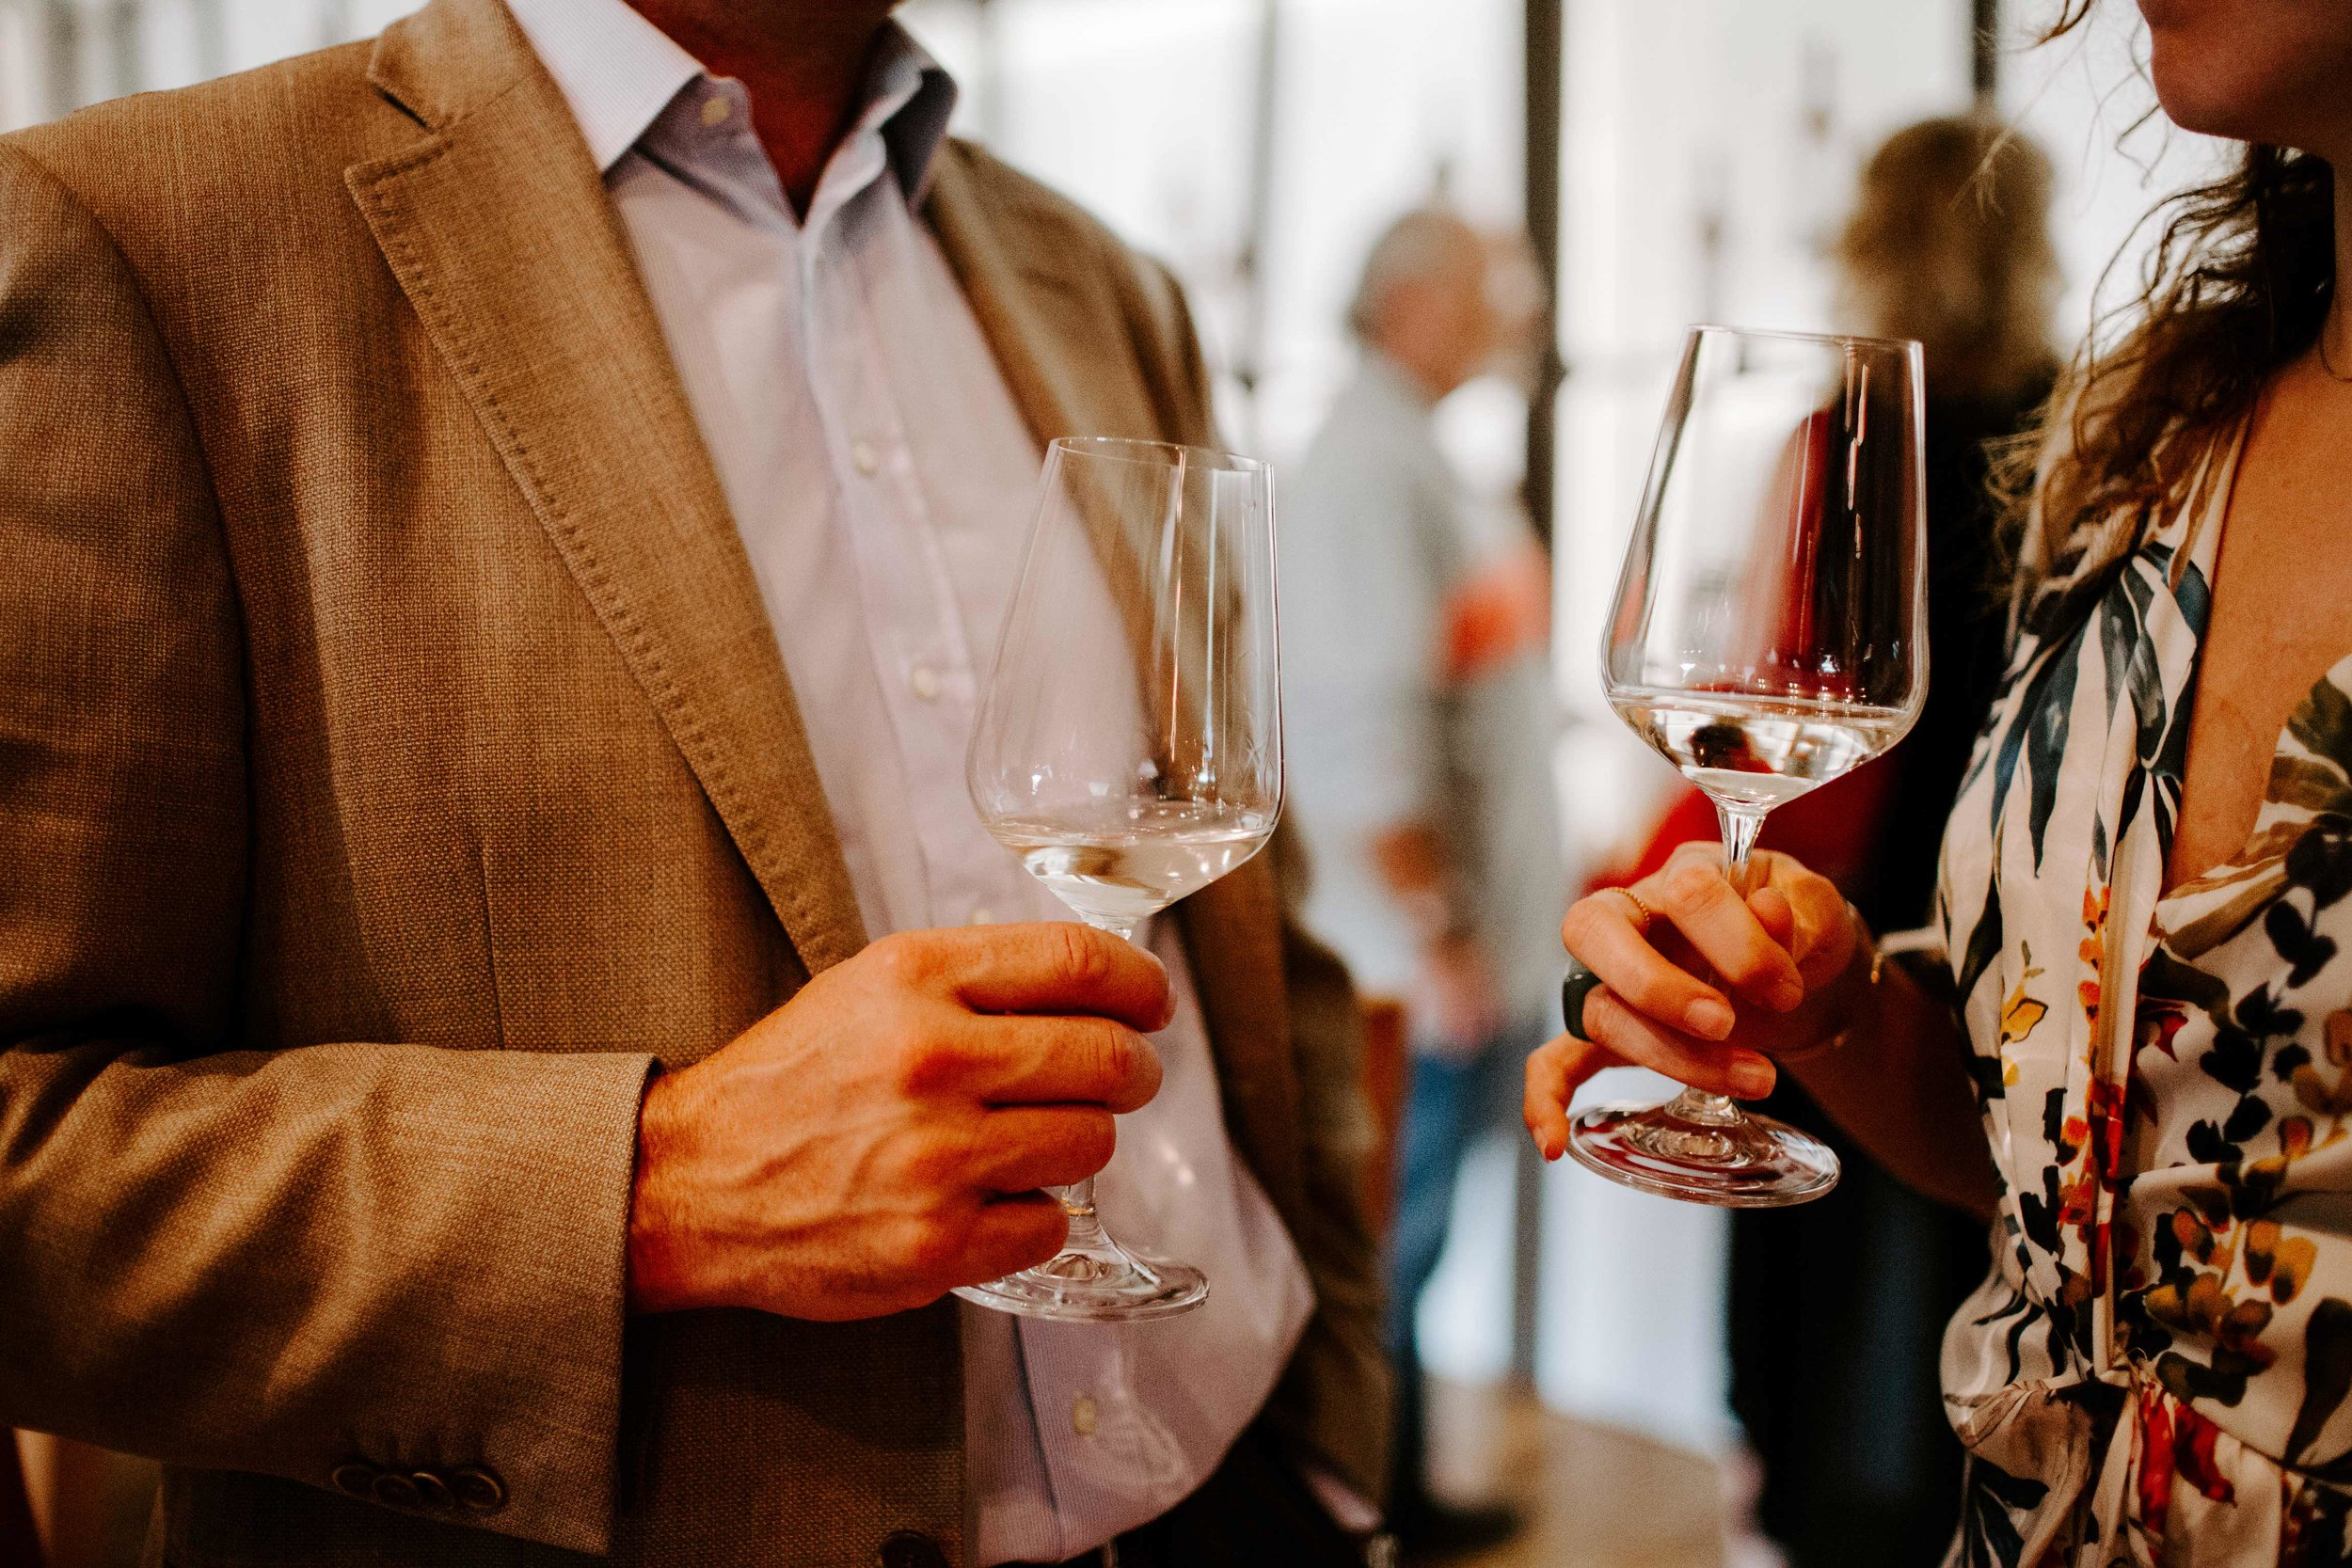 Wine Education - Want to learn the tips and tricks of tasting wine? We will show you the best way to understand the differences of tannin and acidity in wines while also honing in your fruit flavor skills. With this we will also take you on a journey to meet great winemakers who through centuries of knowledge produce priceless wine, while we discuss the differences between the wine regions Barolo and Barbaresco and how the soil structures differ in each vineyard, the recent wine movements, and the ever-changing weather pattern and how this is effecting the wines today.